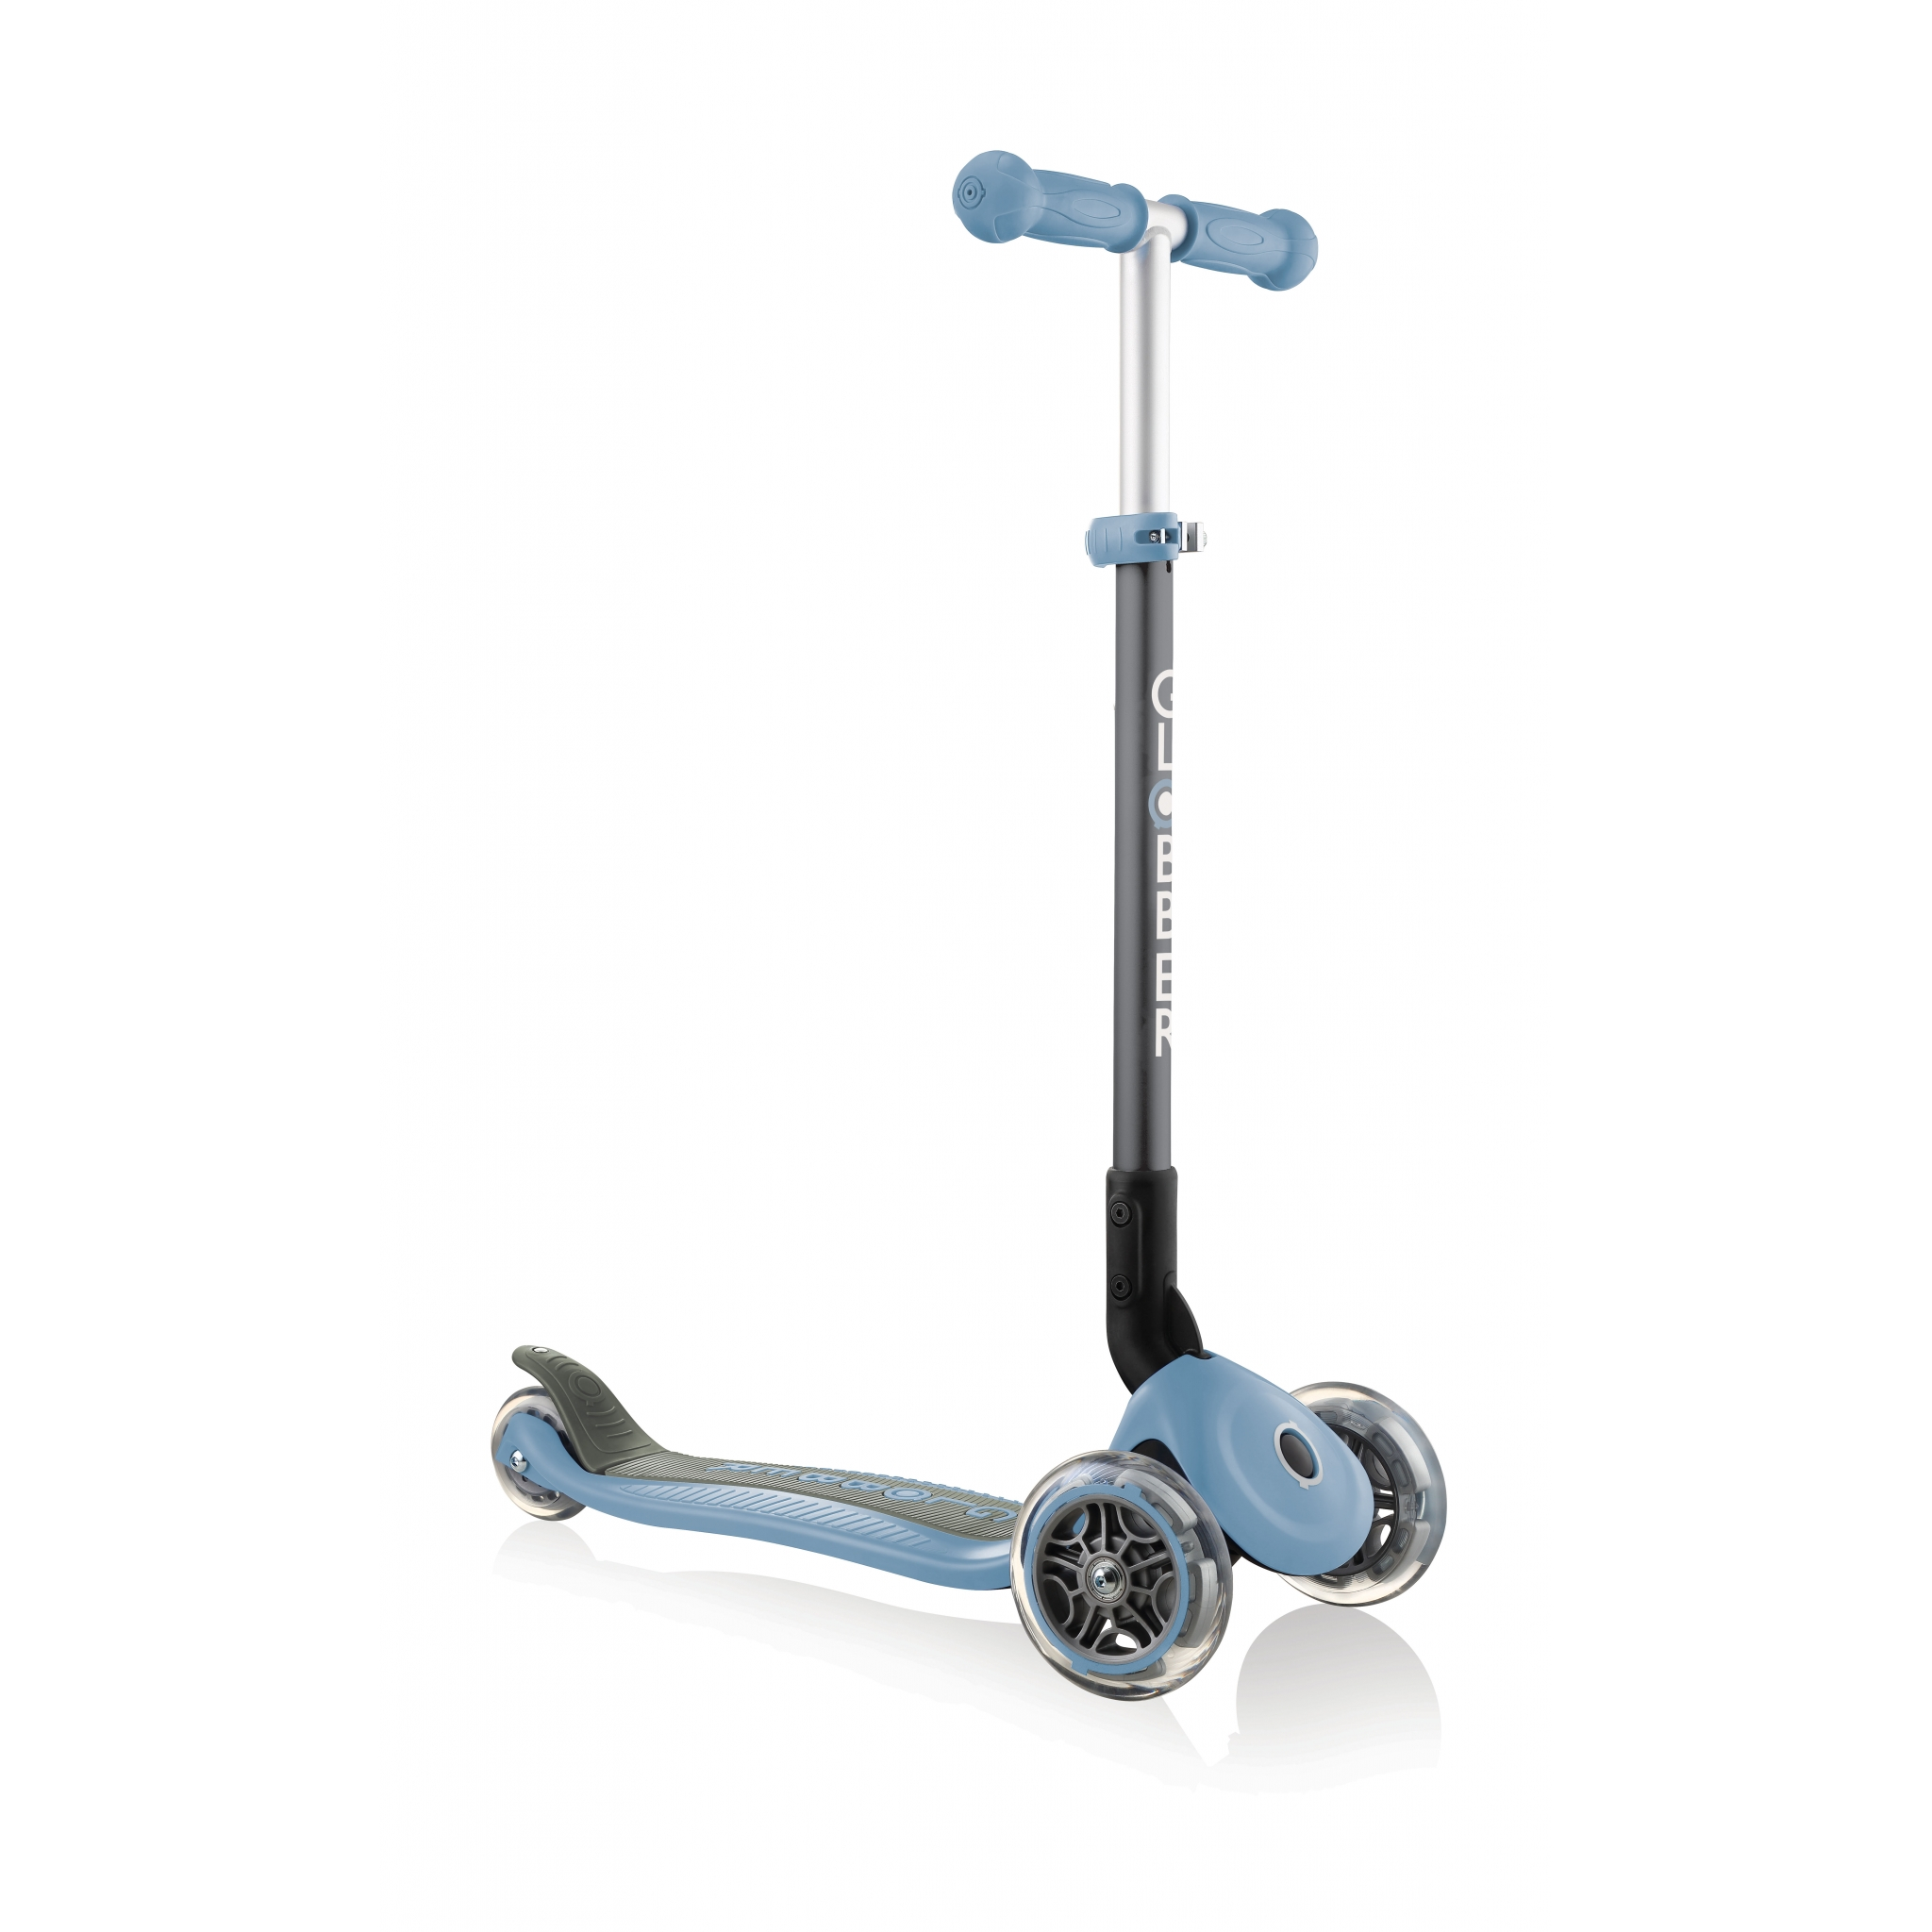 PRIMO-FOLDABLE-3-wheel-foldable-scooter-for-kids_ash-blue